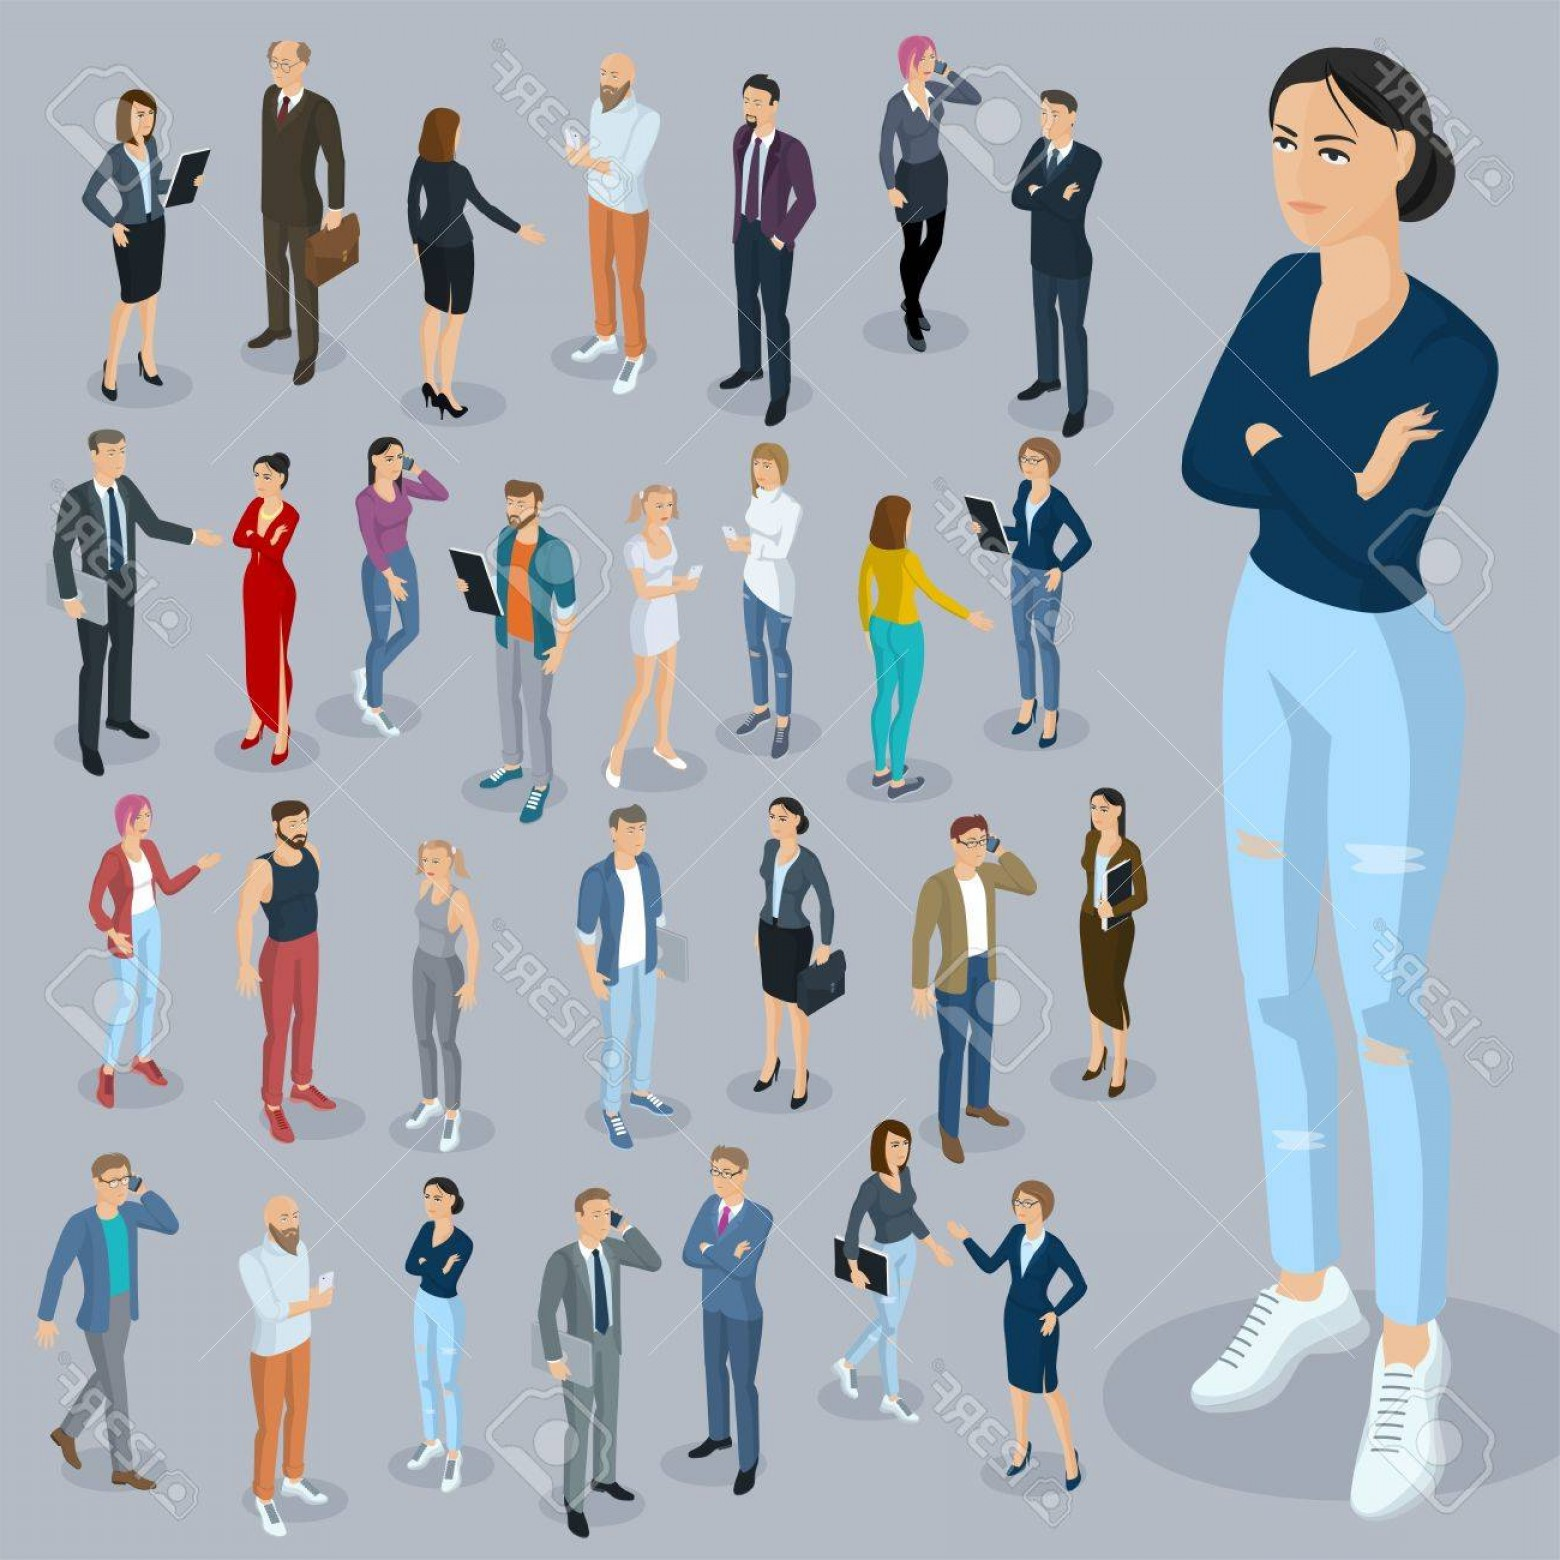 Vector People Man: Photostock Vector Set Of Isometric D Flat Design Vector People Different Characters Styles And Professions Isometric